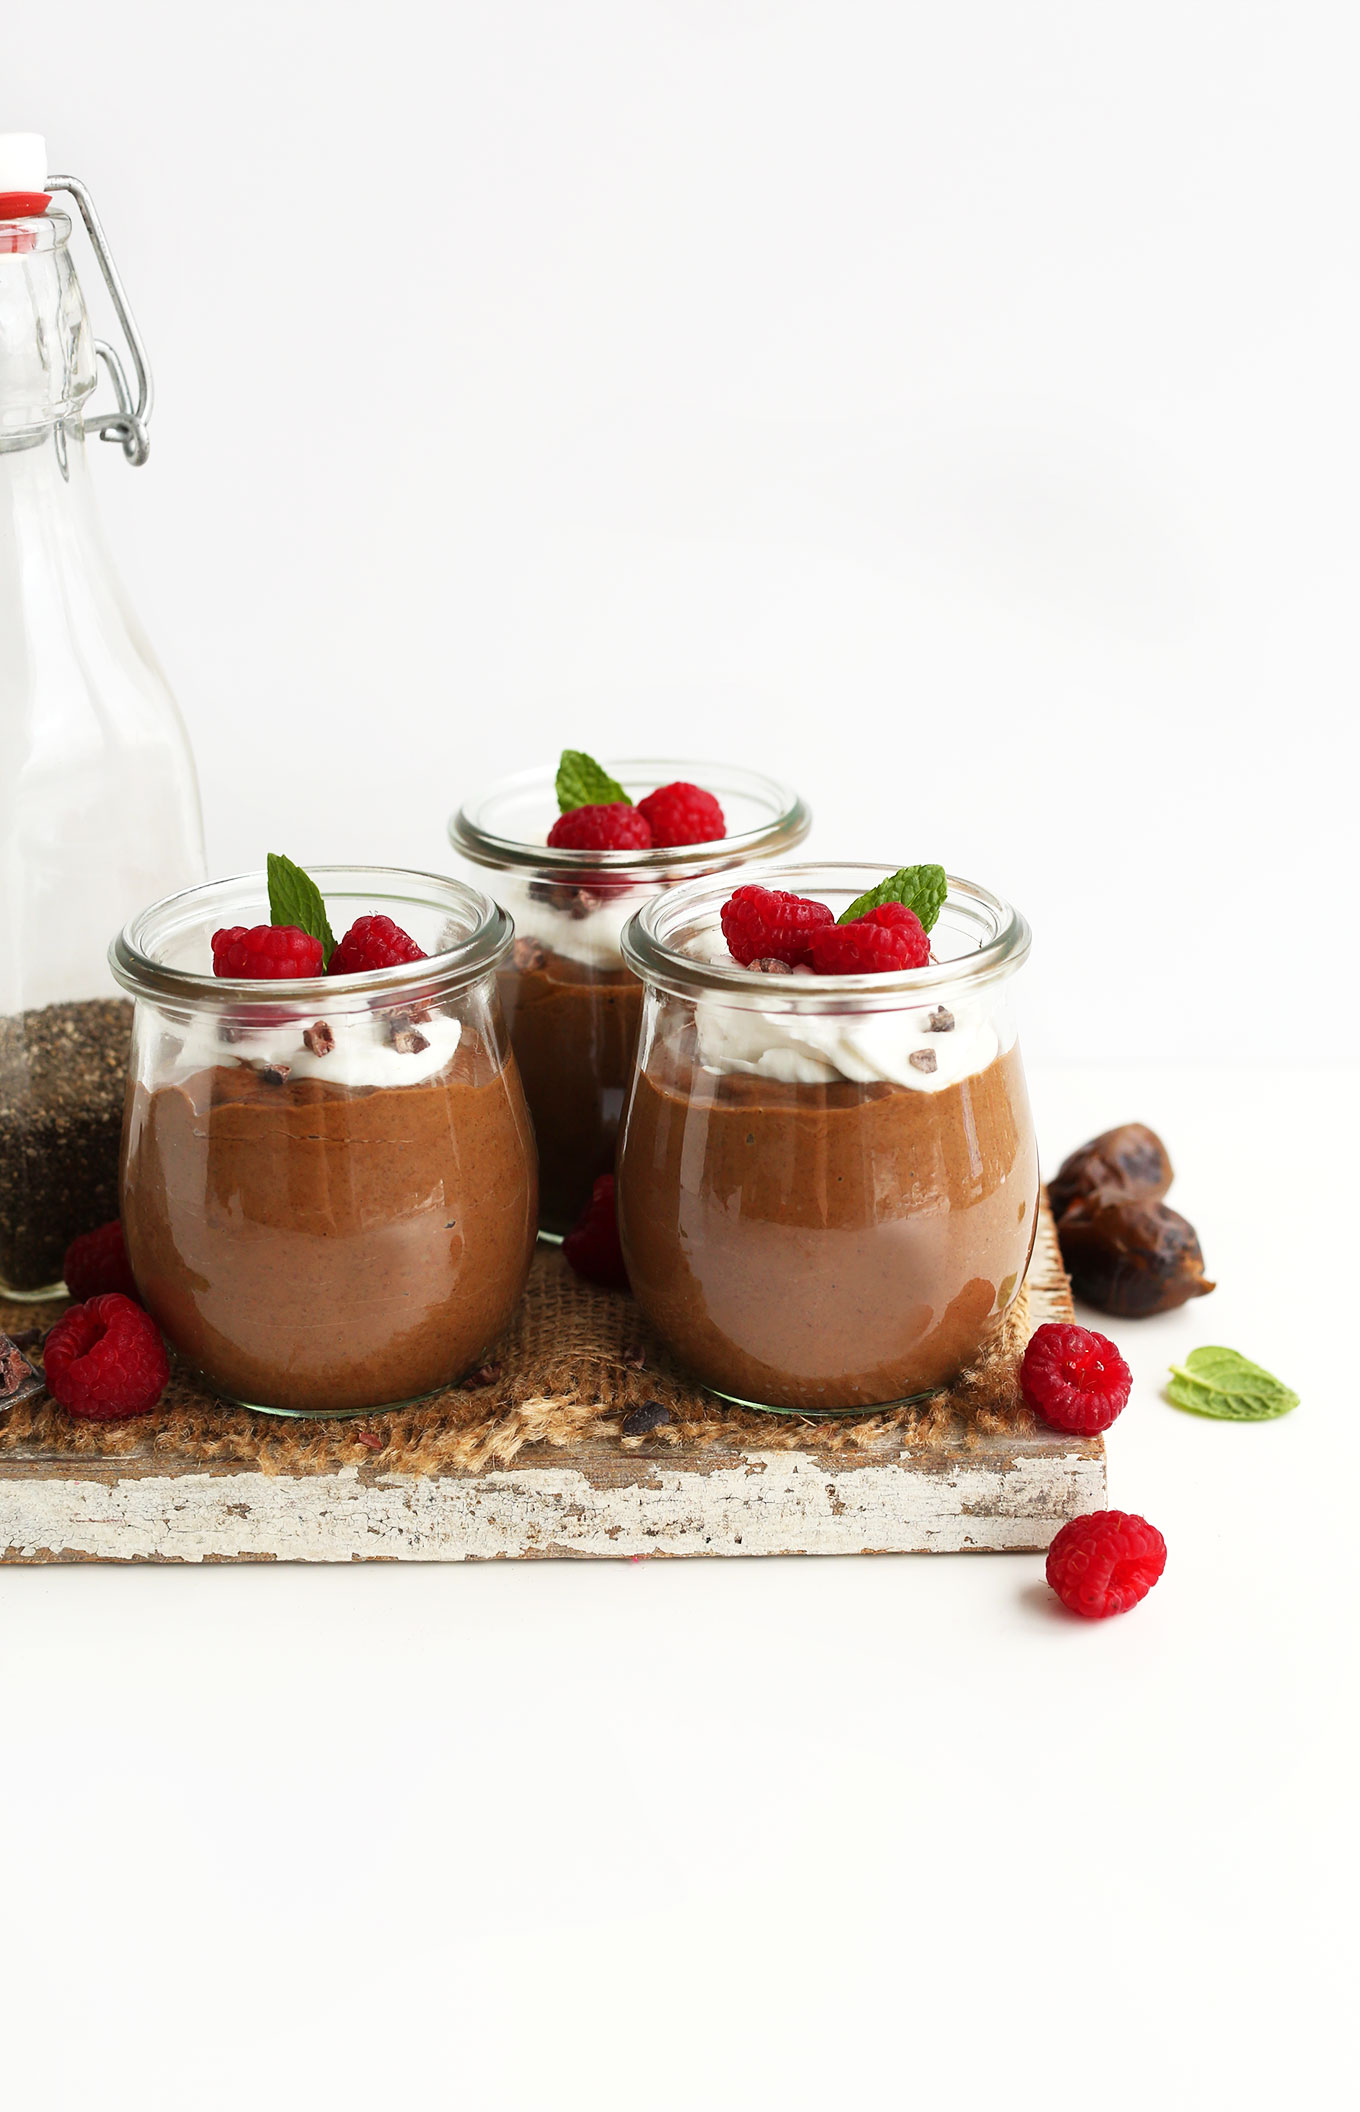 Jars of our super easy Chocolate Chia Seed Pudding recipe